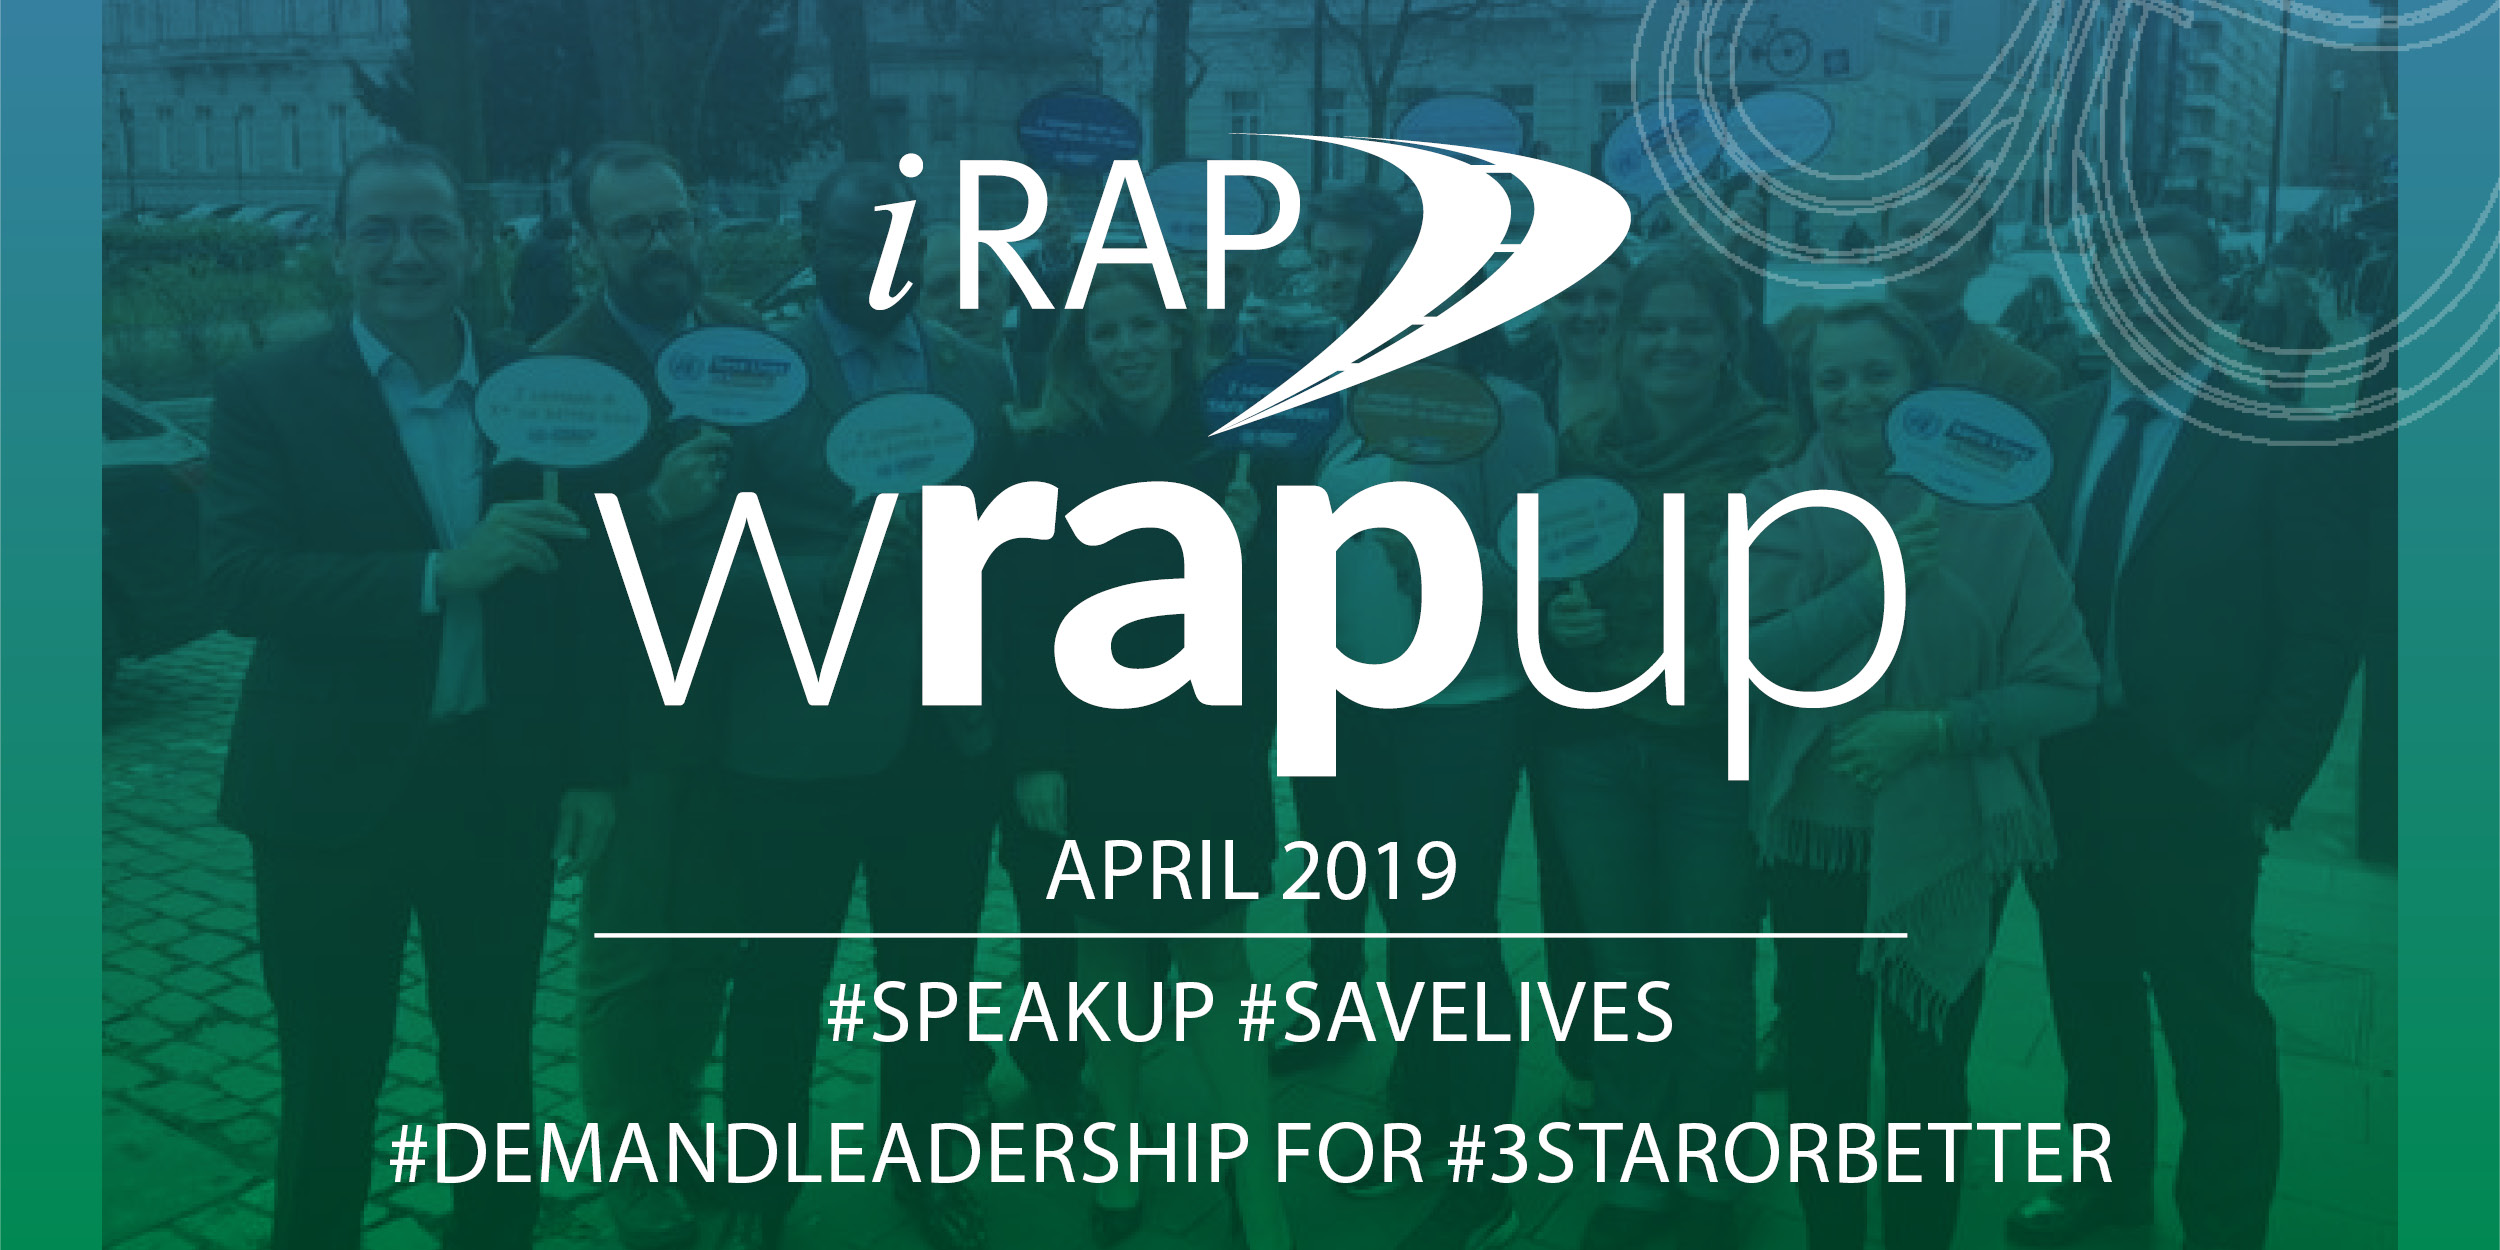 Latest WrapUp E-newsletter now available (April 2019 Edition): #Demandleadership for #3StarorBetter